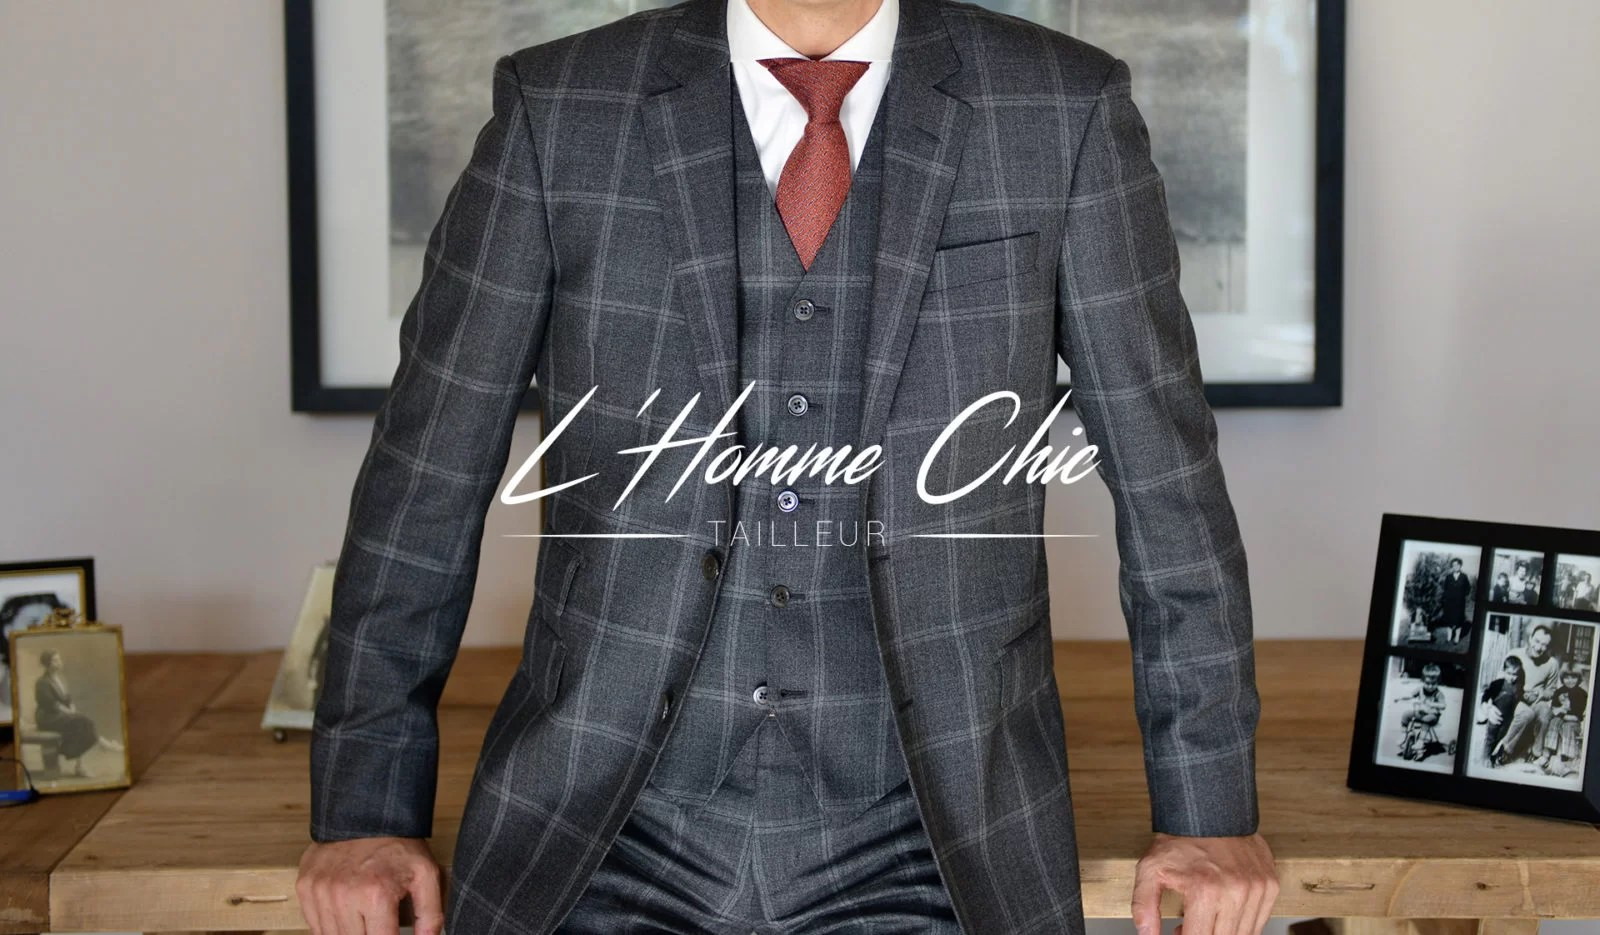 svnprod-graphiste-dijon-homme-chic-tailleur-featured-image